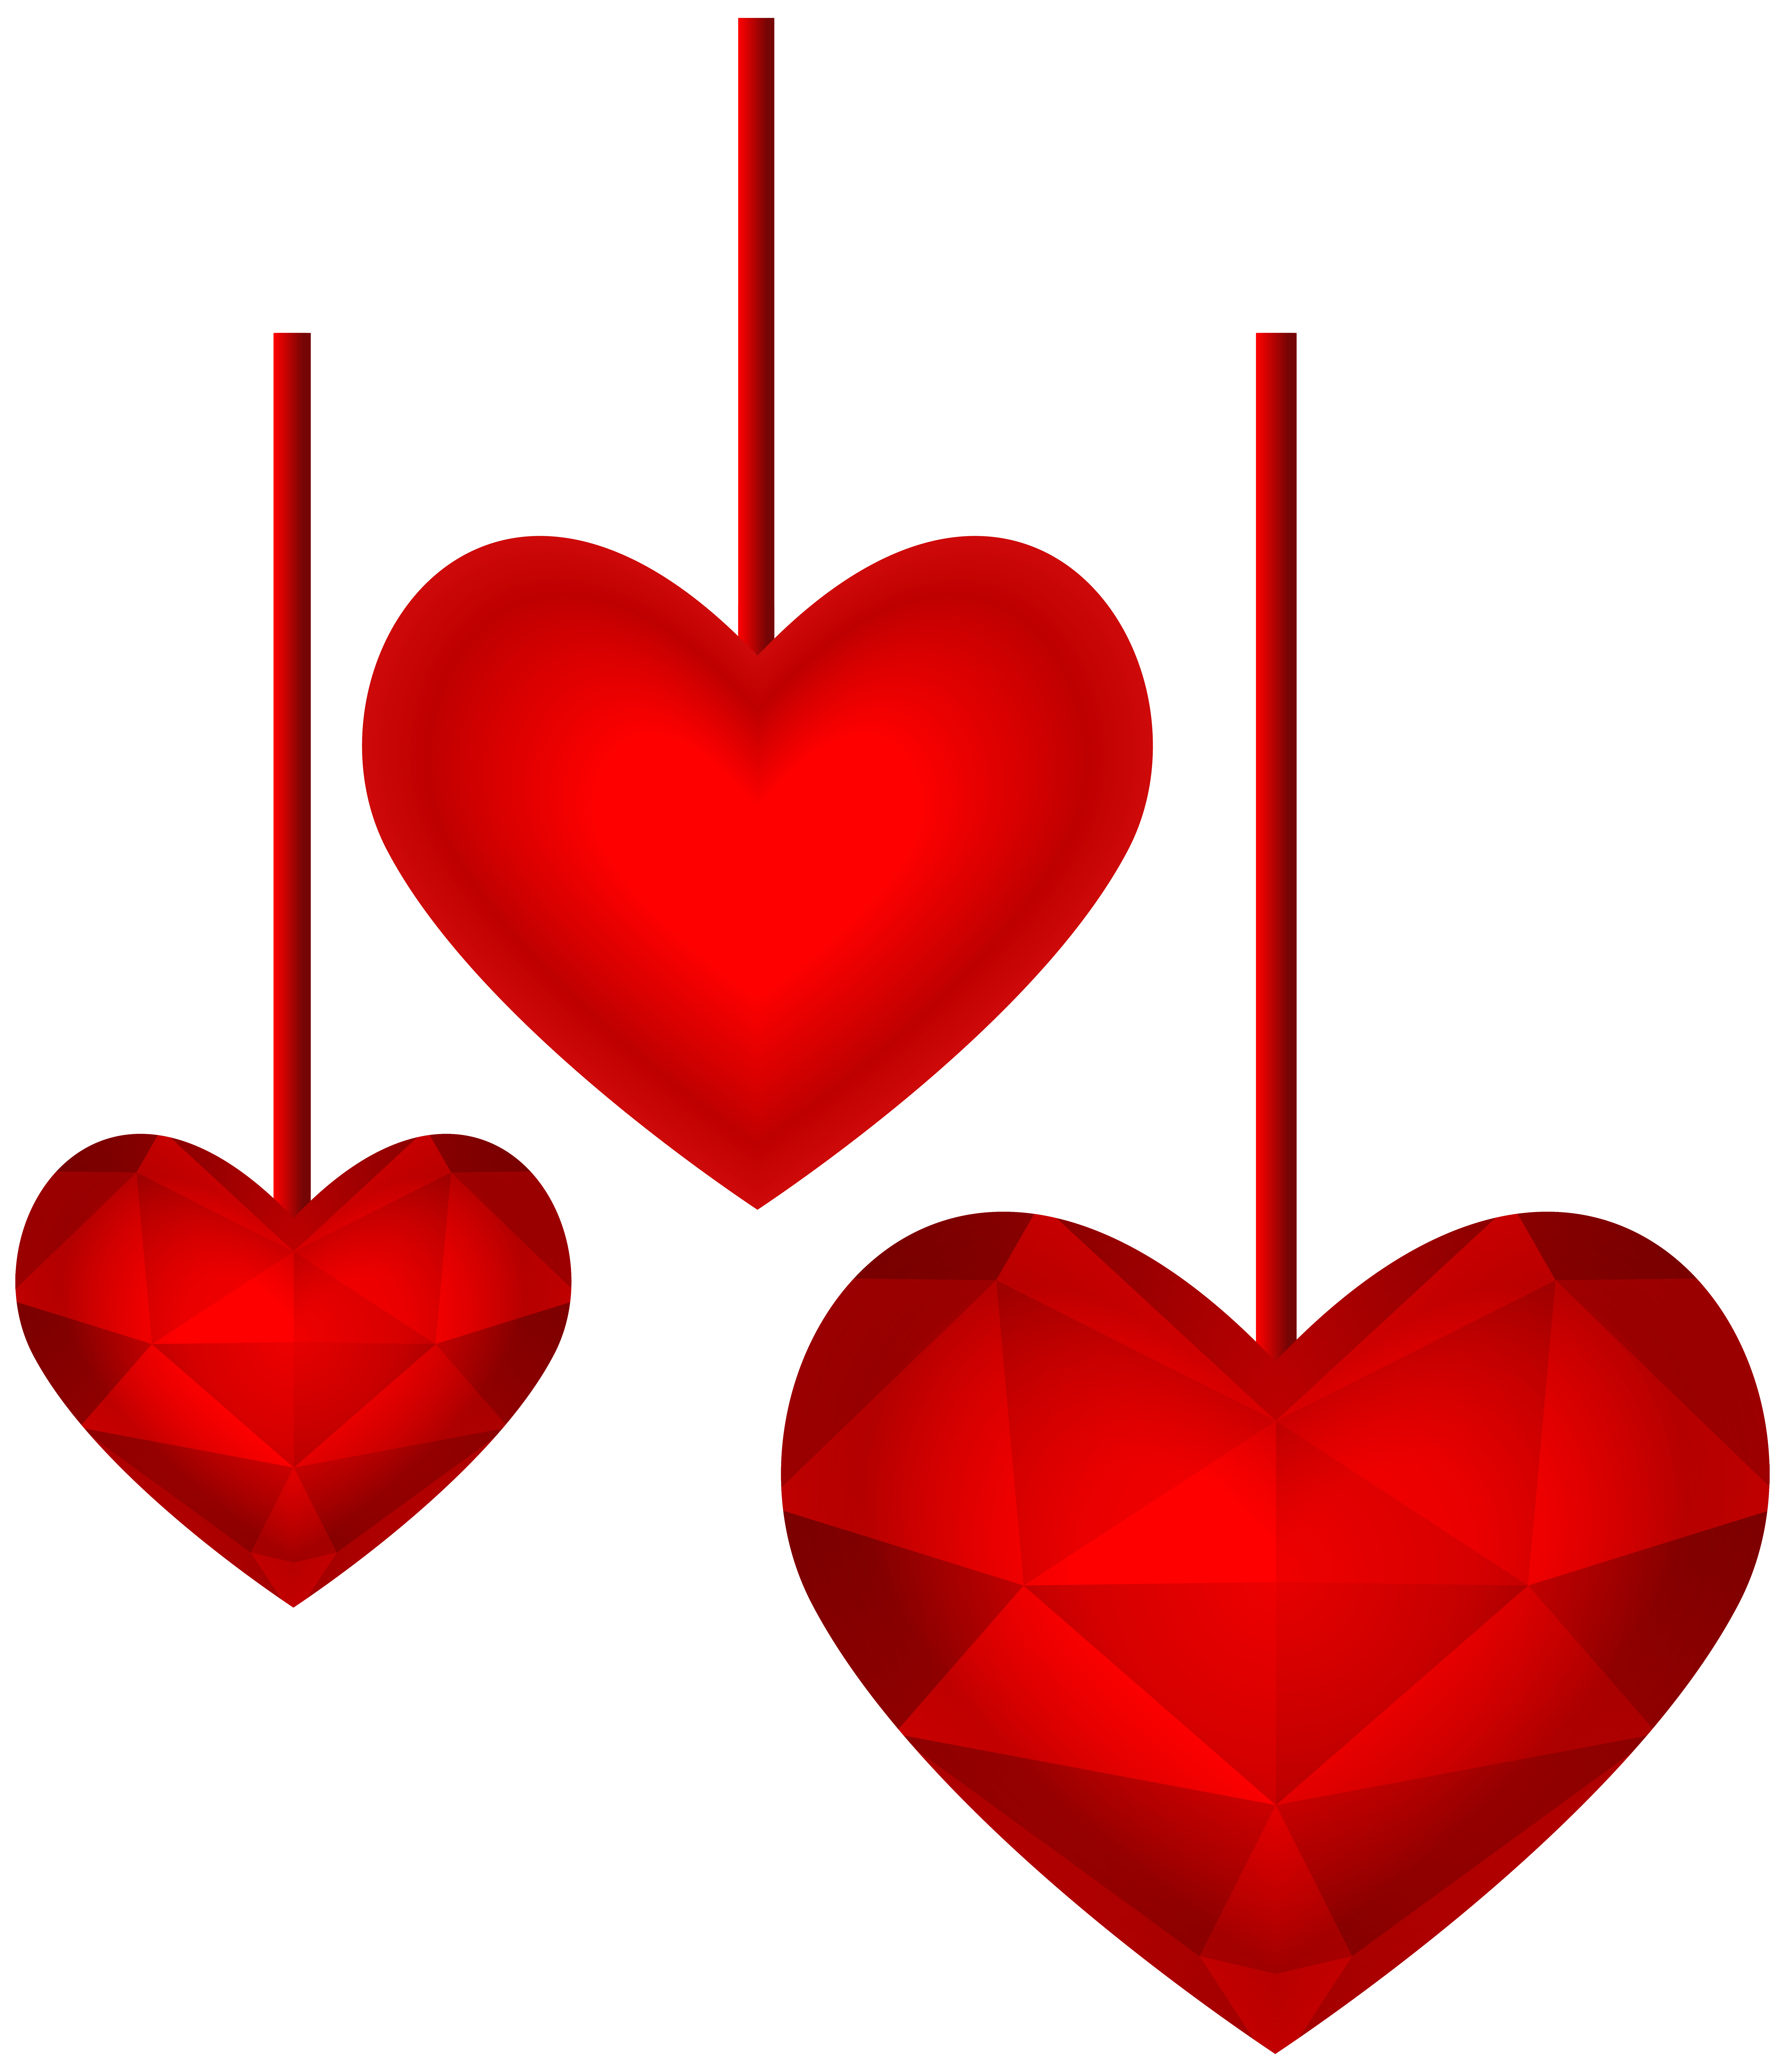 Clipart hearts lollipop. Hanging red transparent png